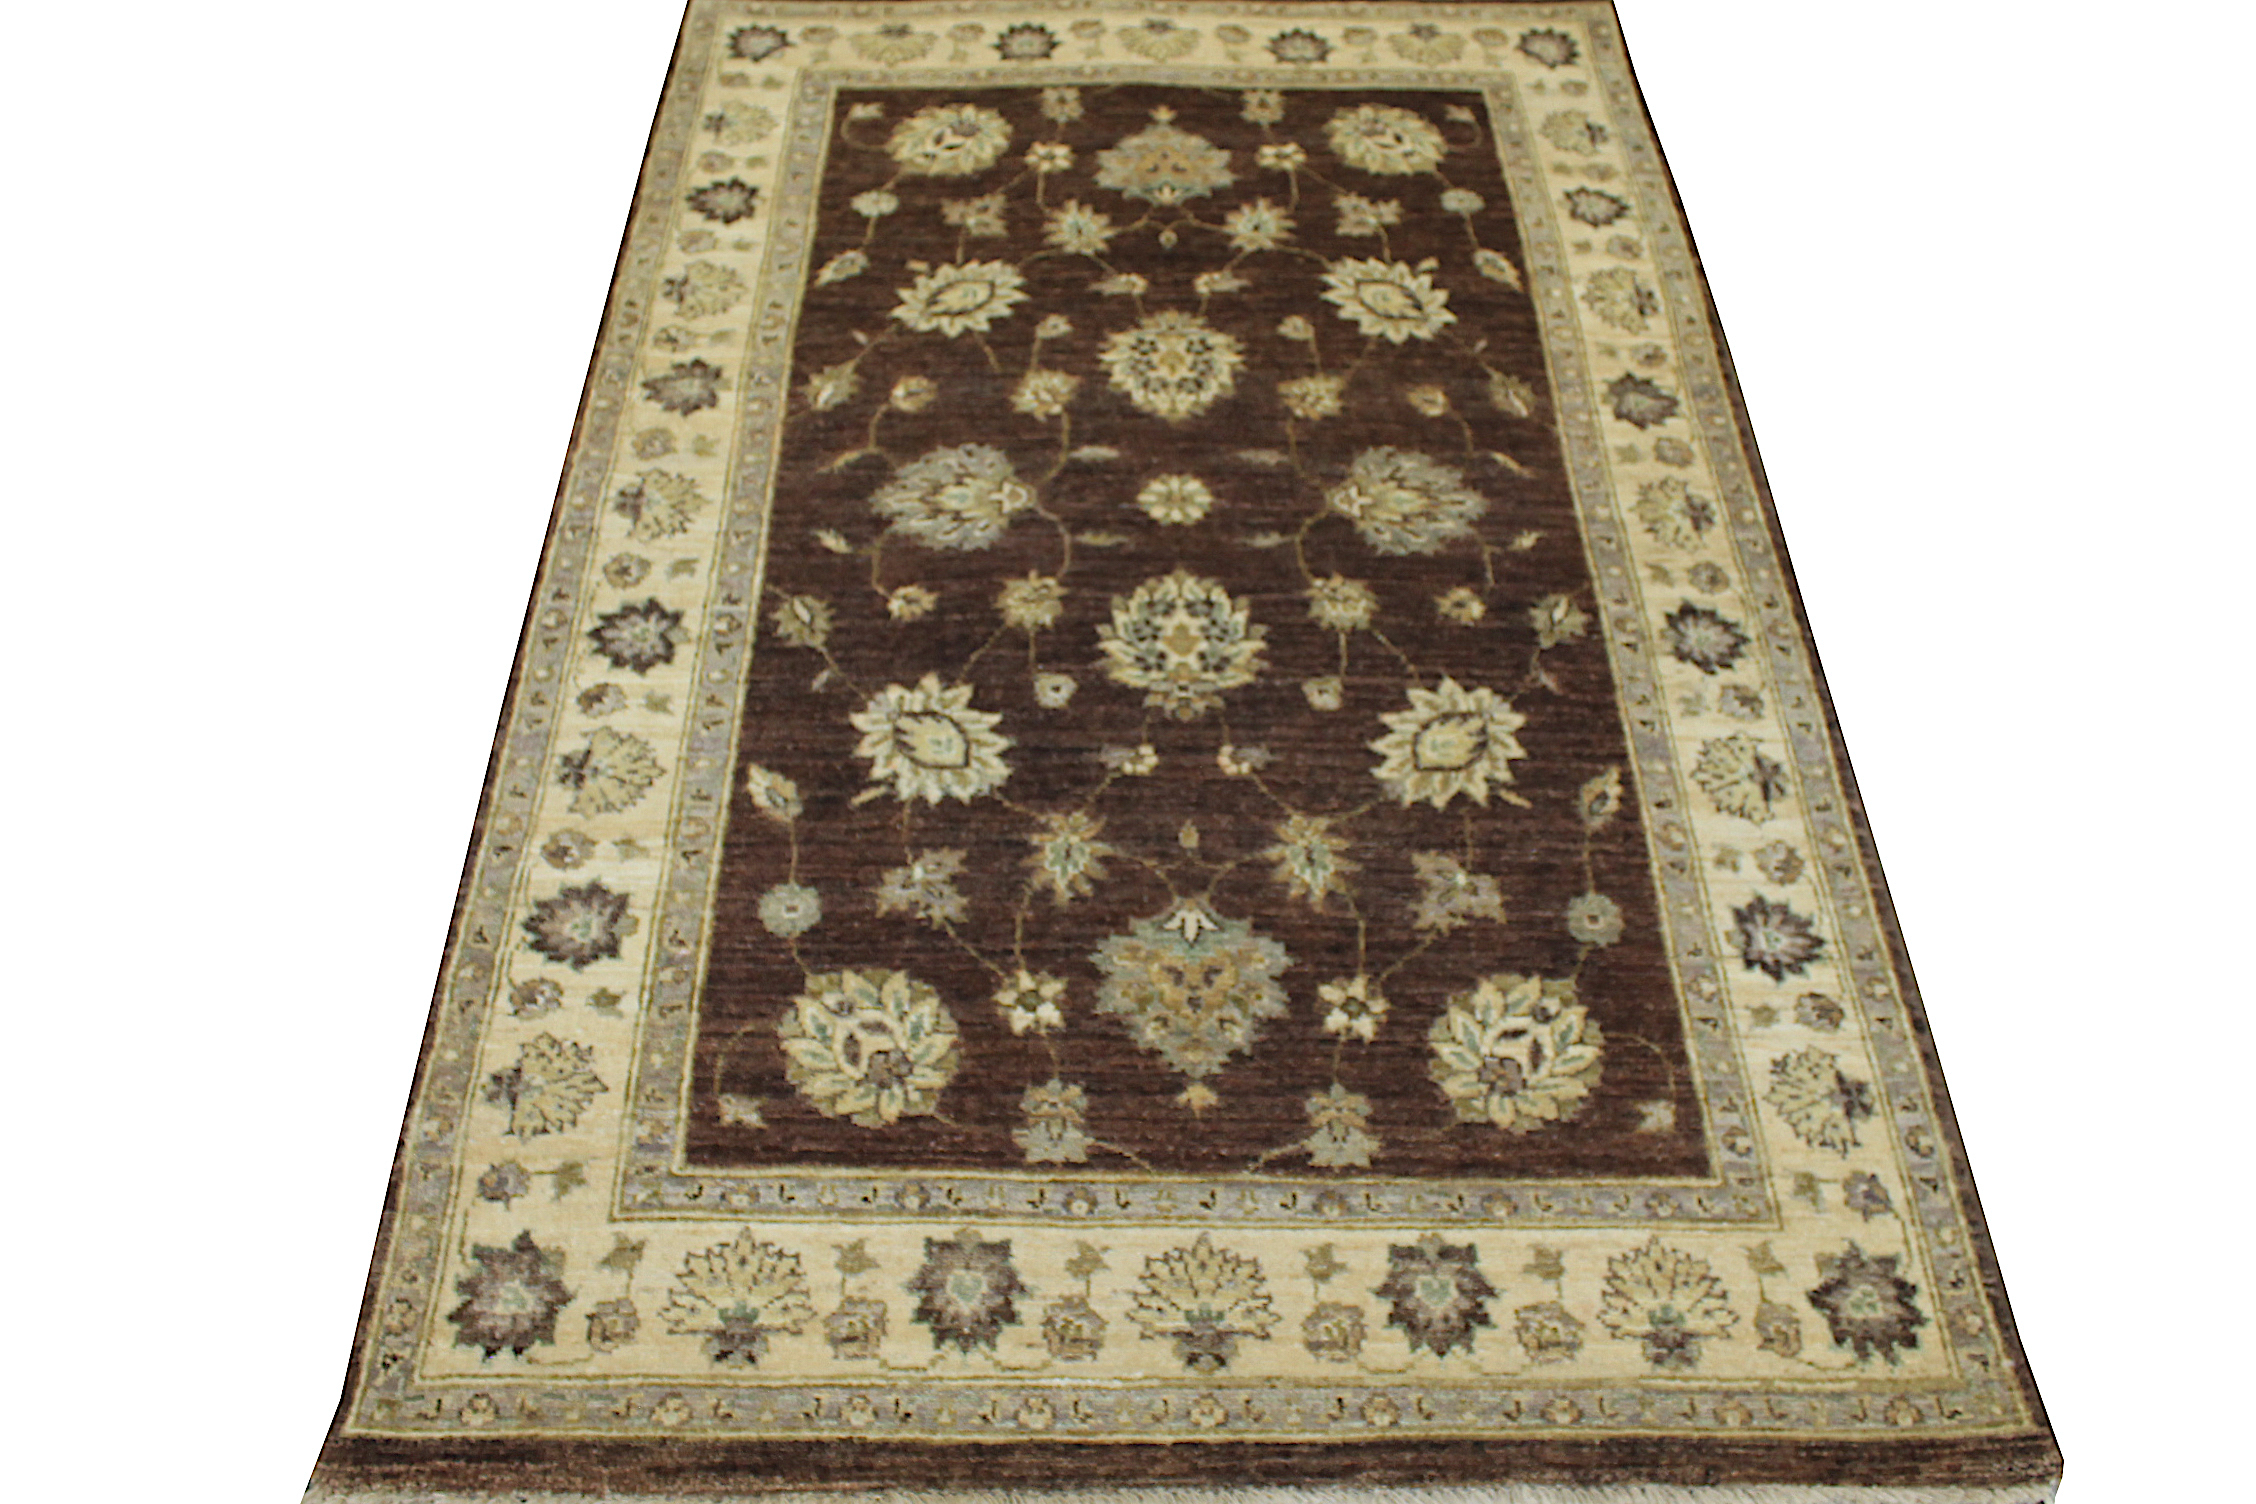 4x6 Traditional Hand Knotted Wool Area Rug - MR12236